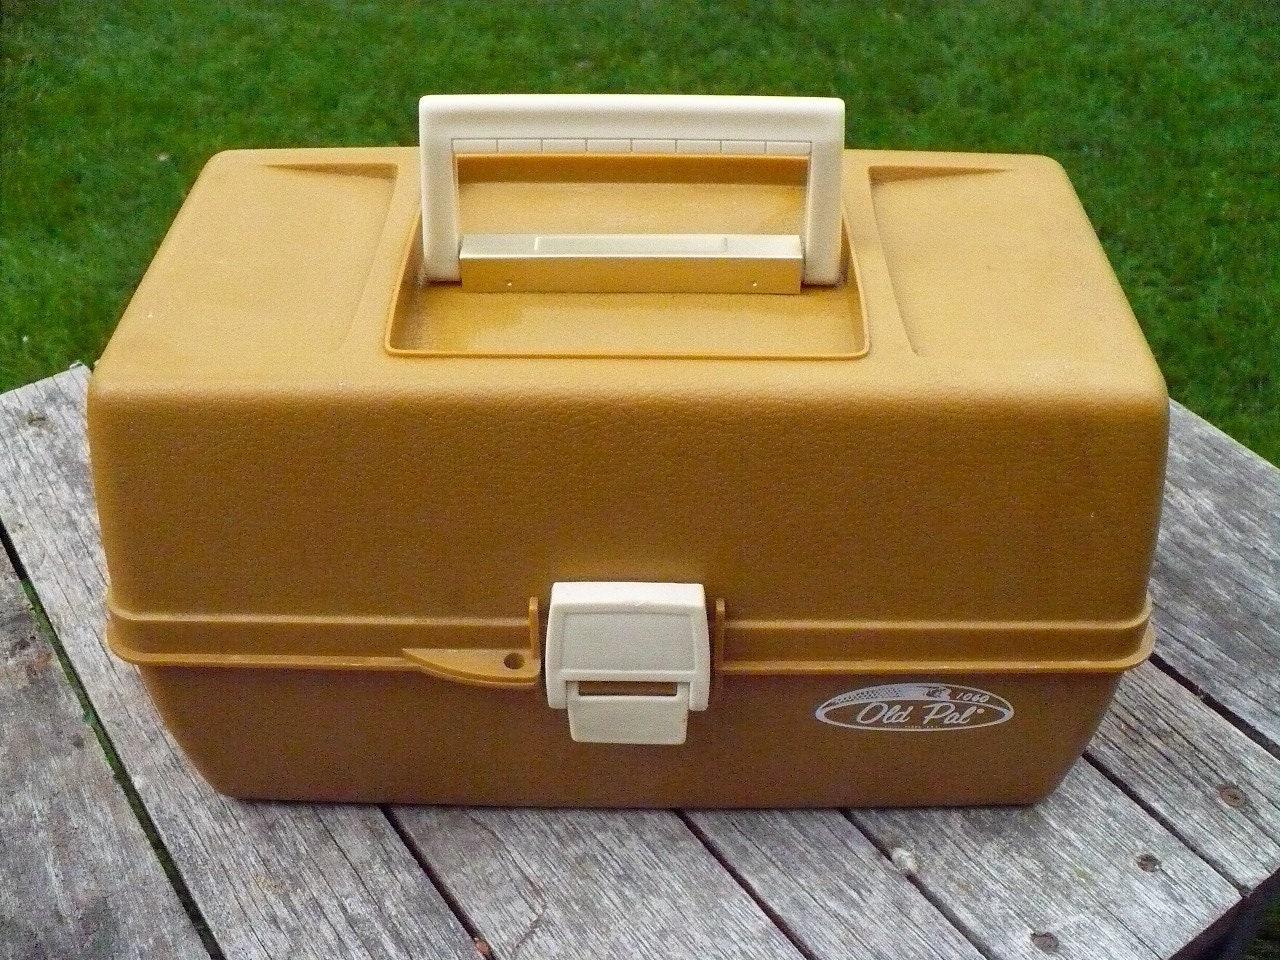 Old Pal Fishing Tackle Box by AusableRiverTrader on Etsy